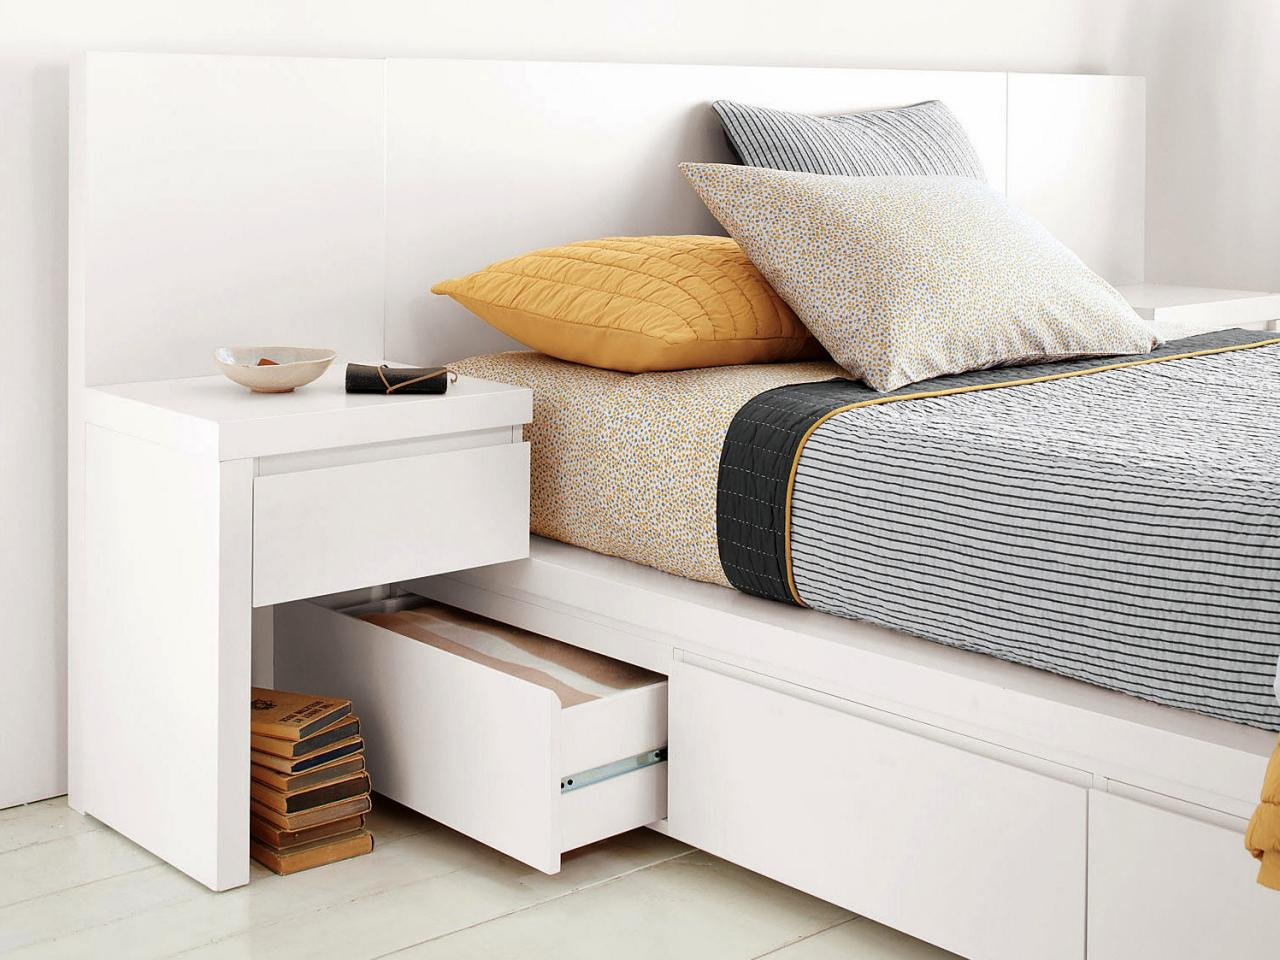 5 expert bedroom storage ideas hgtv 5 expert bedroom storage ideas